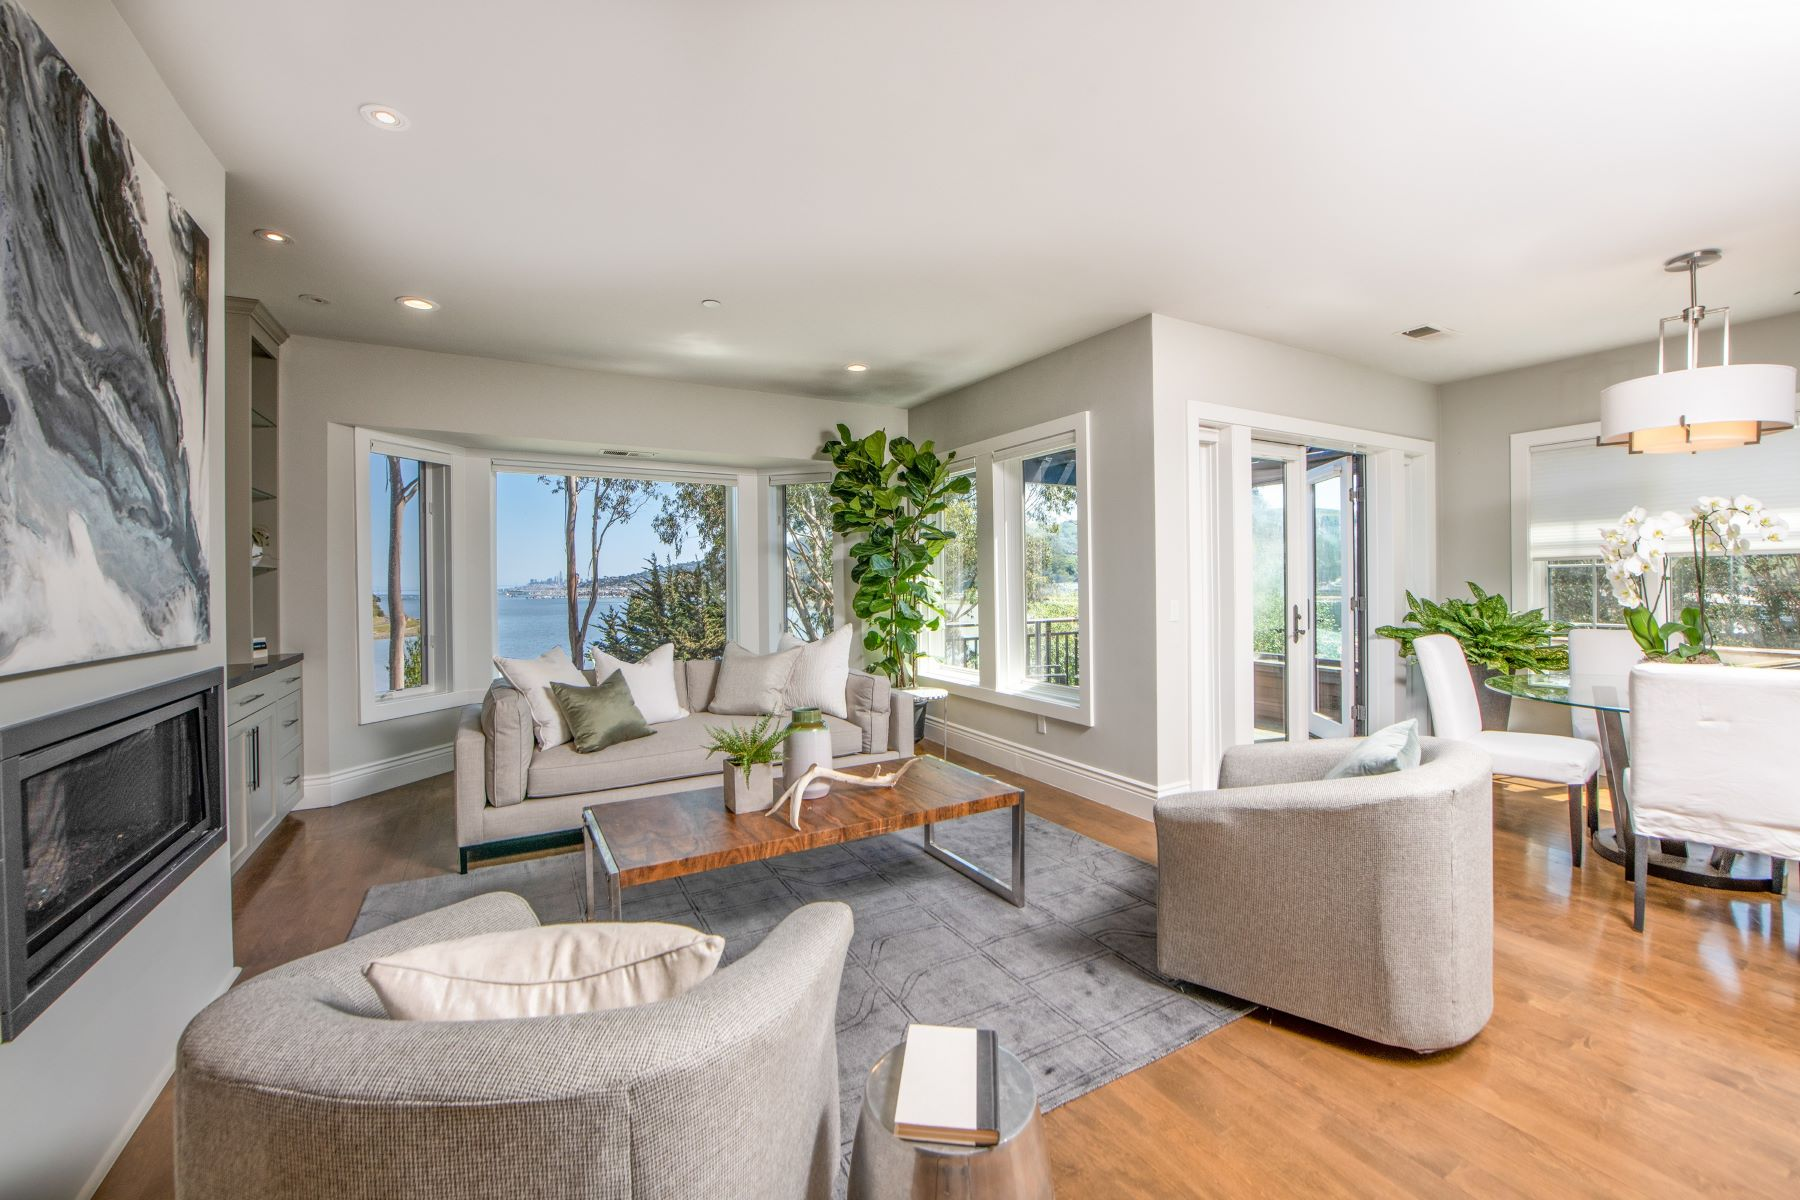 Single Family Homes for Sale at Stunning Remodel with San Francisco Views 40 De Silva Island Drive Mill Valley, California 94941 United States